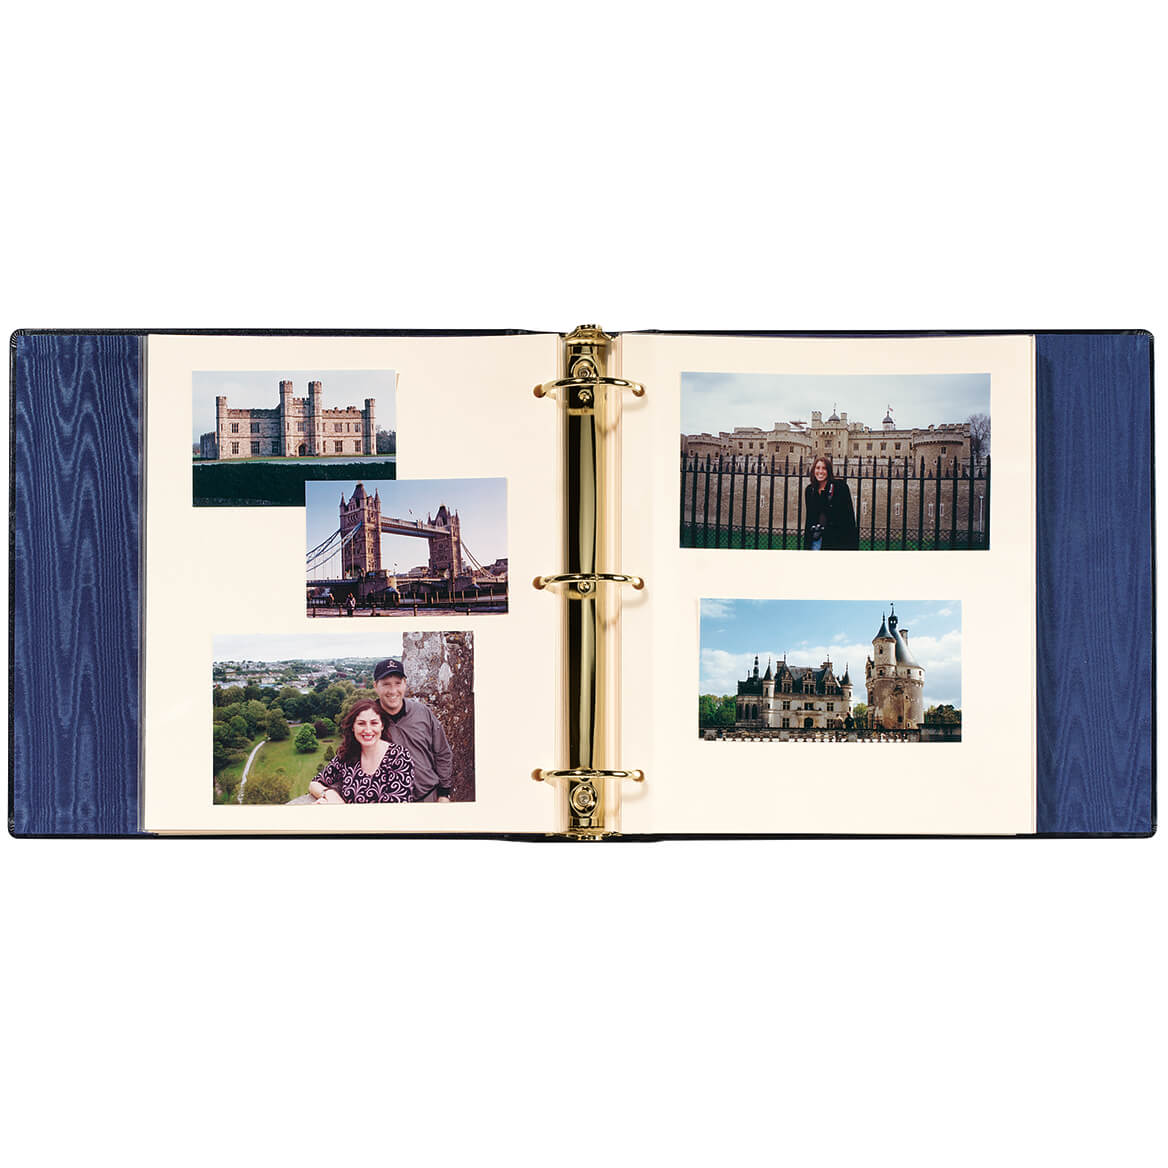 Personalized Presidential Leather Album-309244